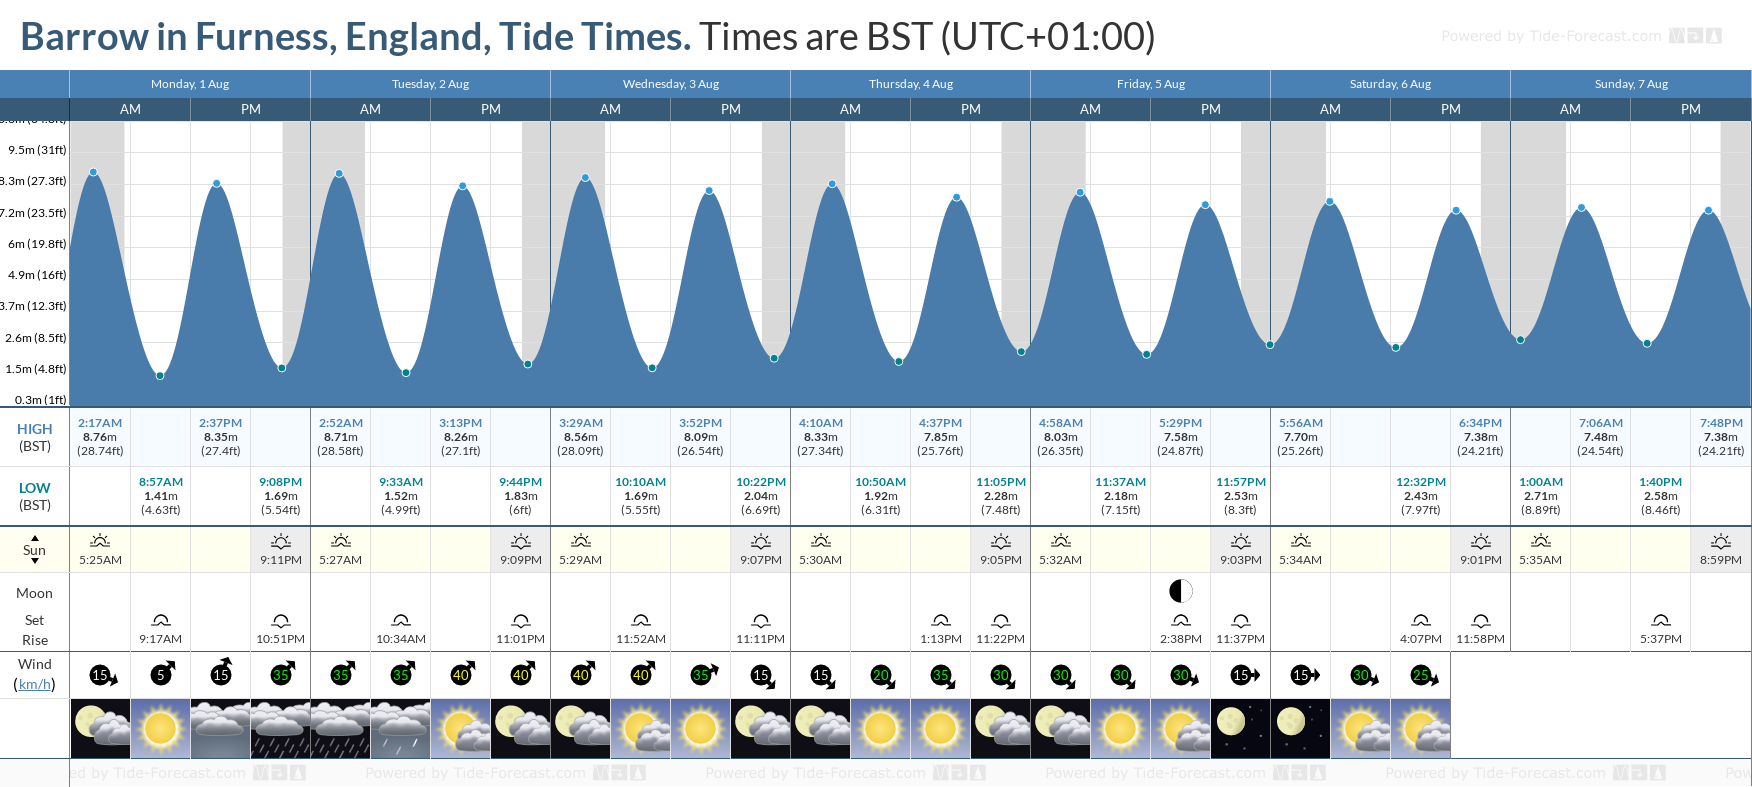 Barrow in Furness, England Tide Chart including high and low tide tide times for the next 7 days